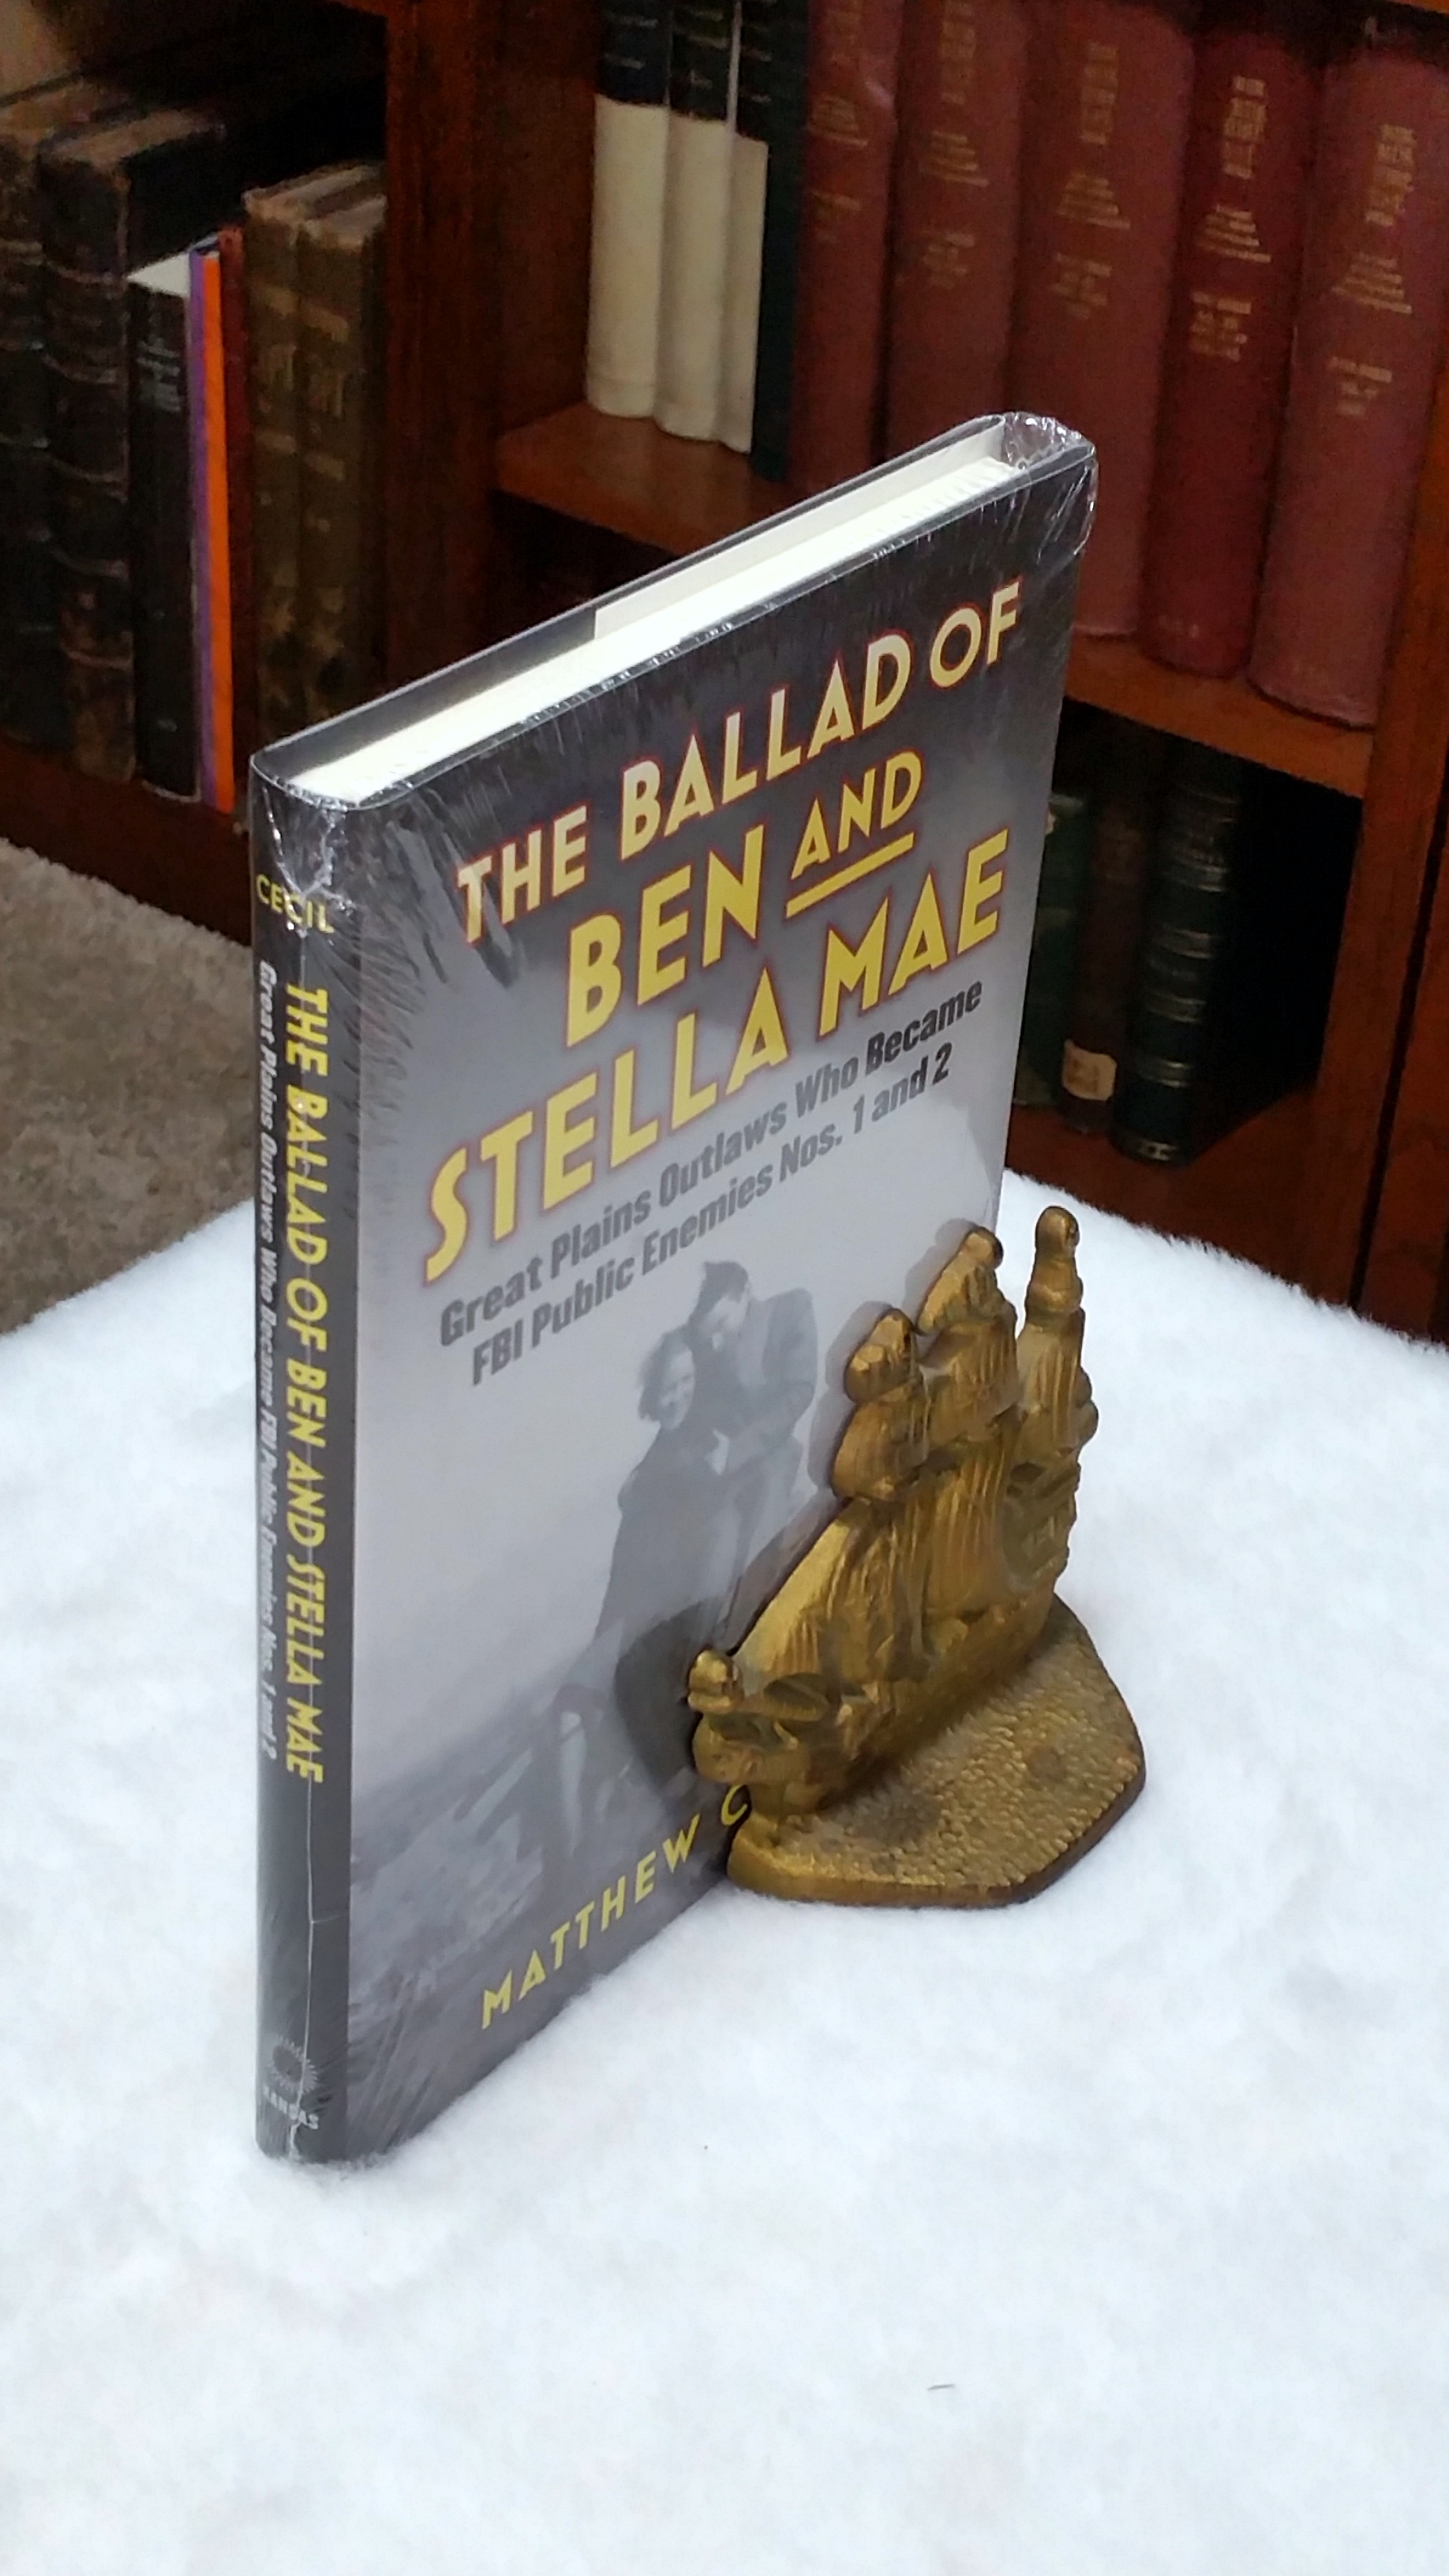 Image for The Ballad of Ben and Stella Mae:  Great Plains Outlaws Who Became FBI Enemies Nos. 1 and 2